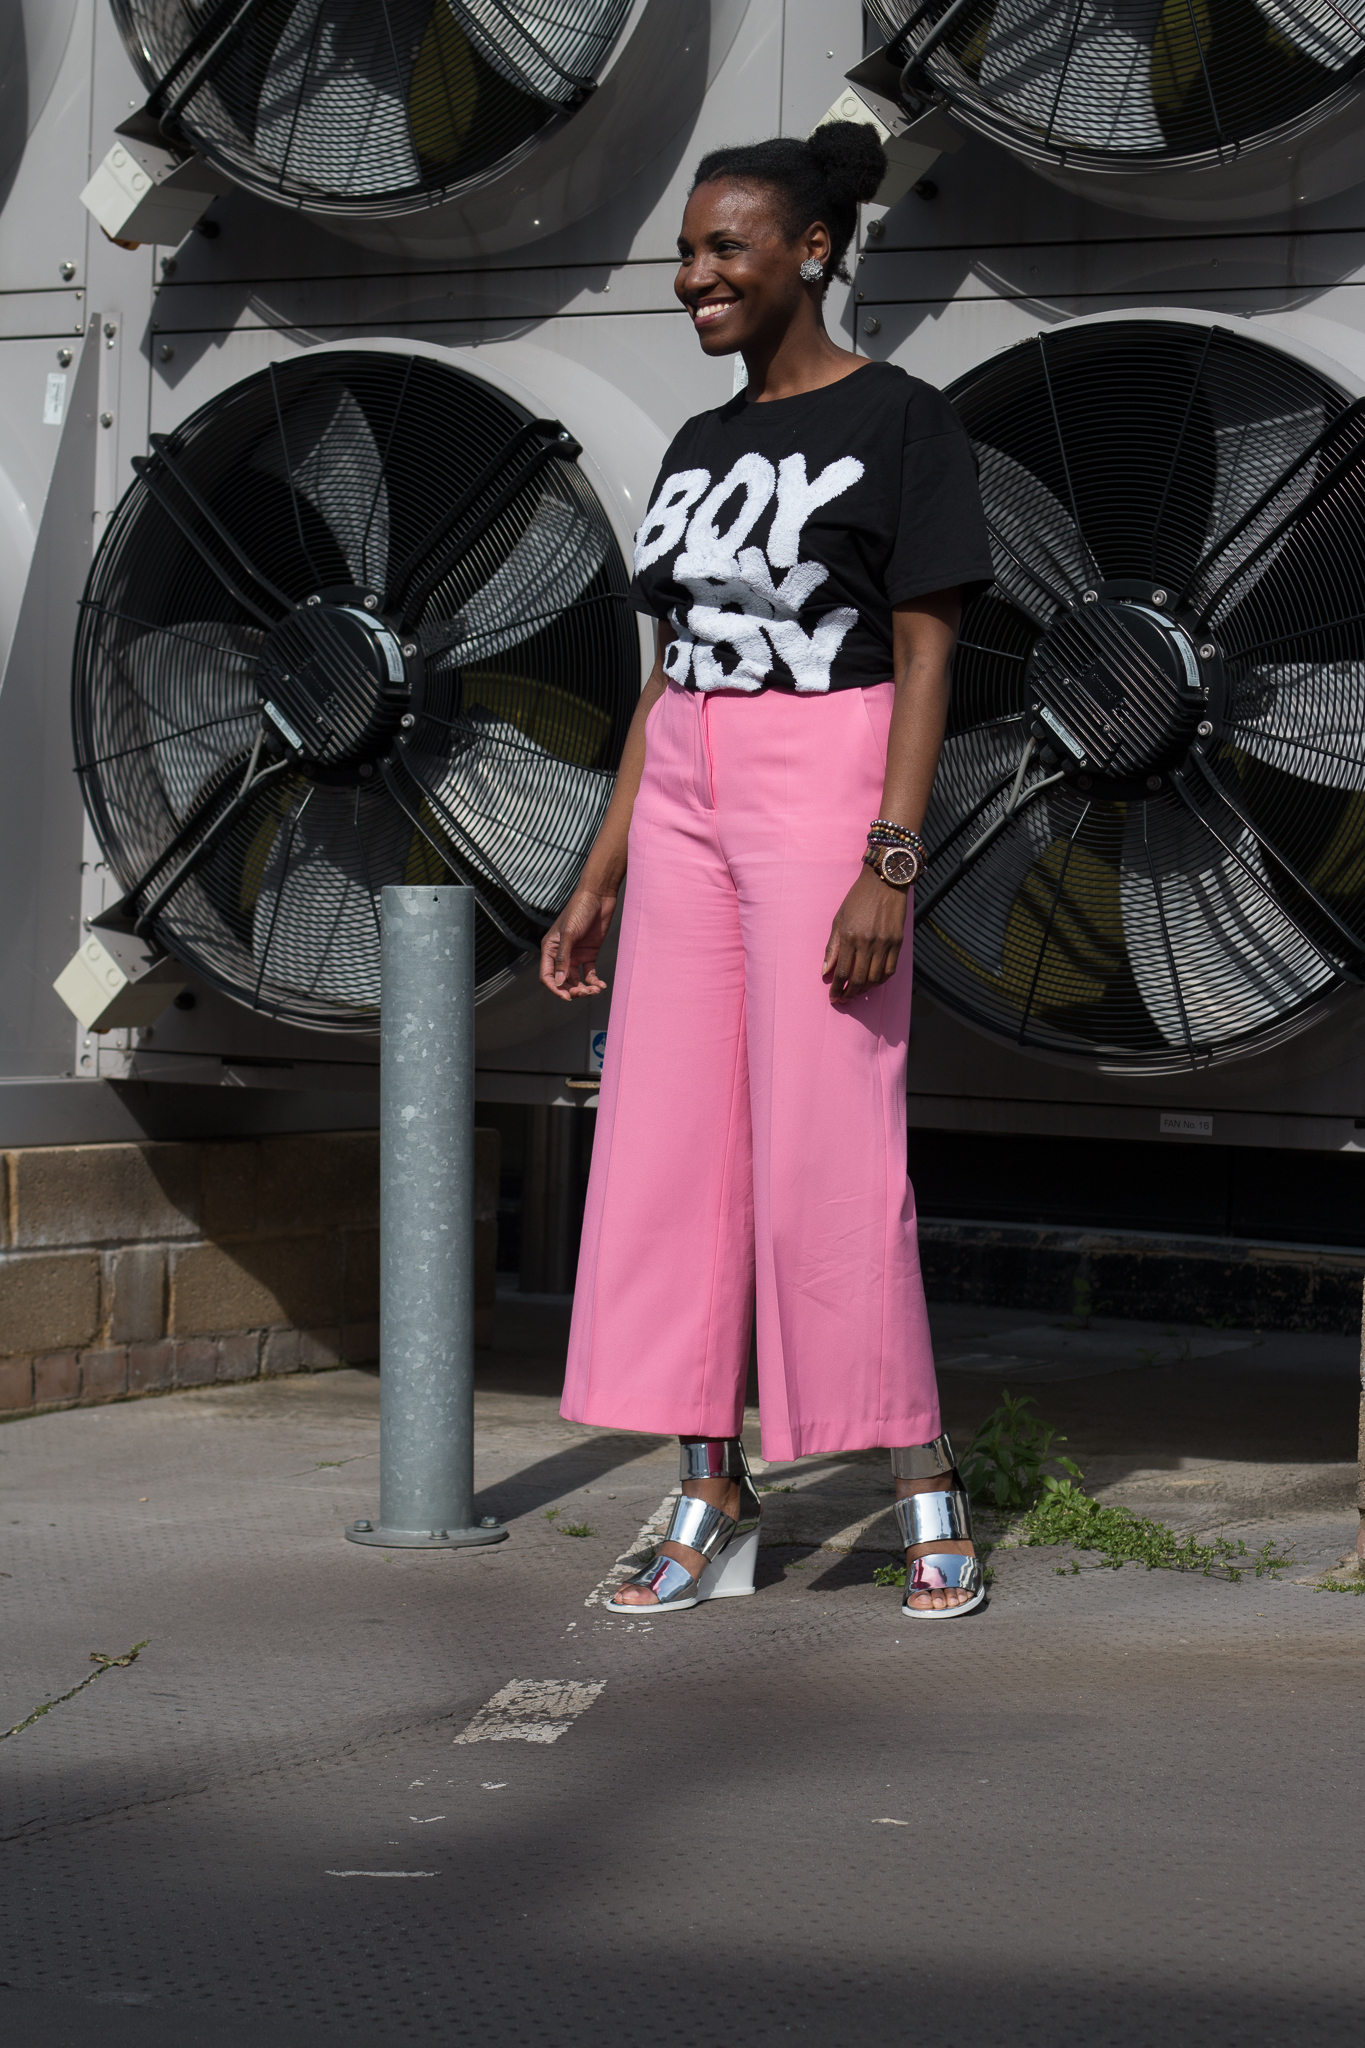 outfit details - shirt: gifted from Boy By Boy fashion show; culottes: Zara; shoes: & Other Stories